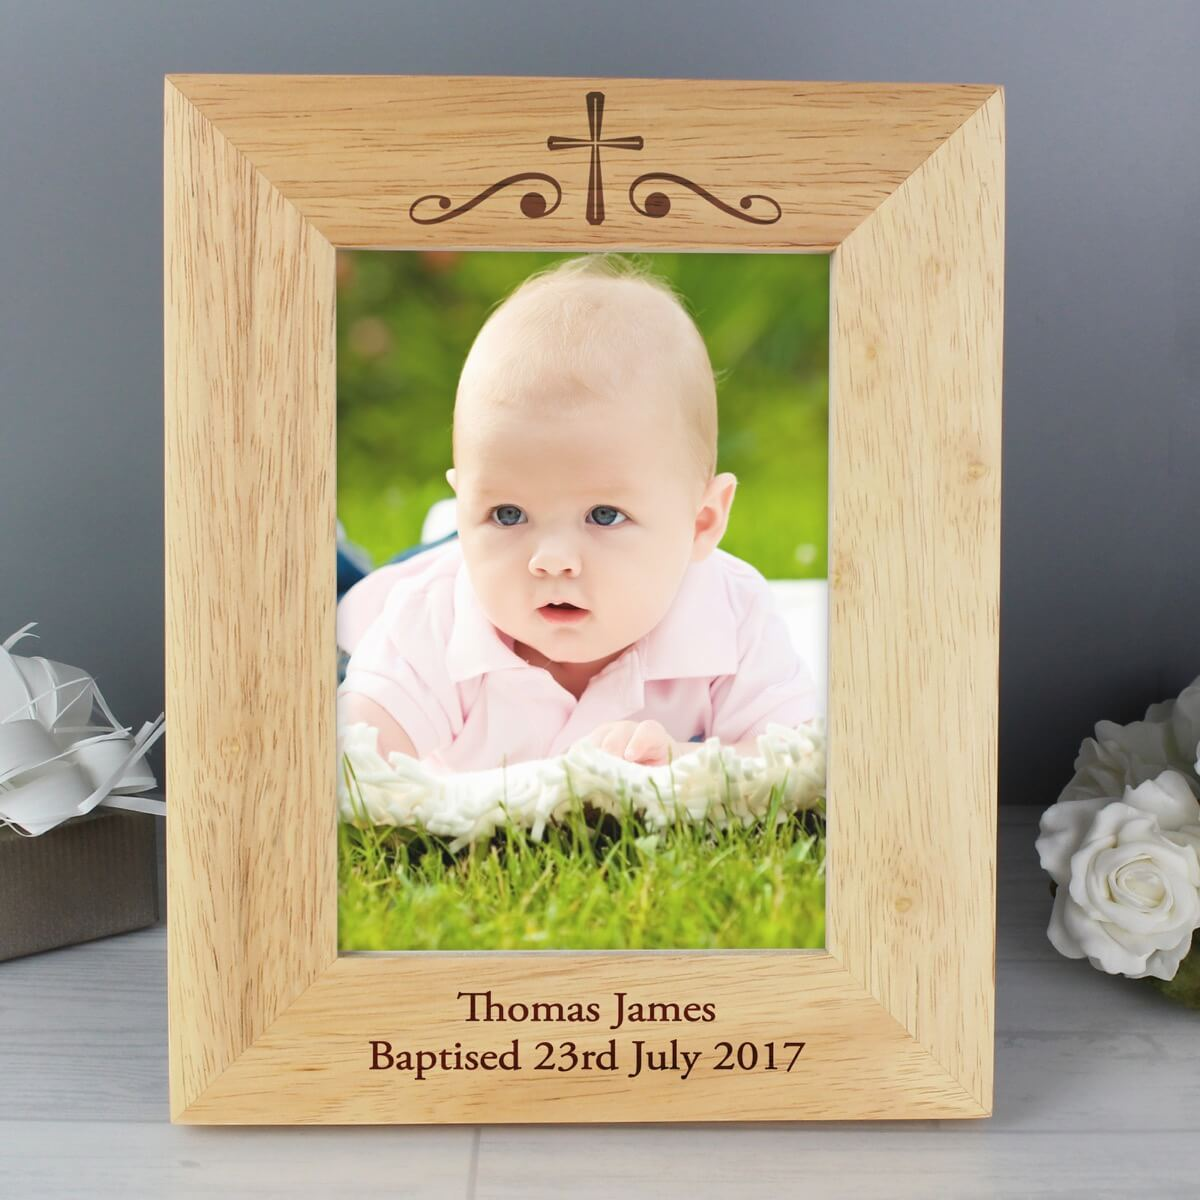 Personalised Religious Swirl 7×5 Wooden Photo Frame